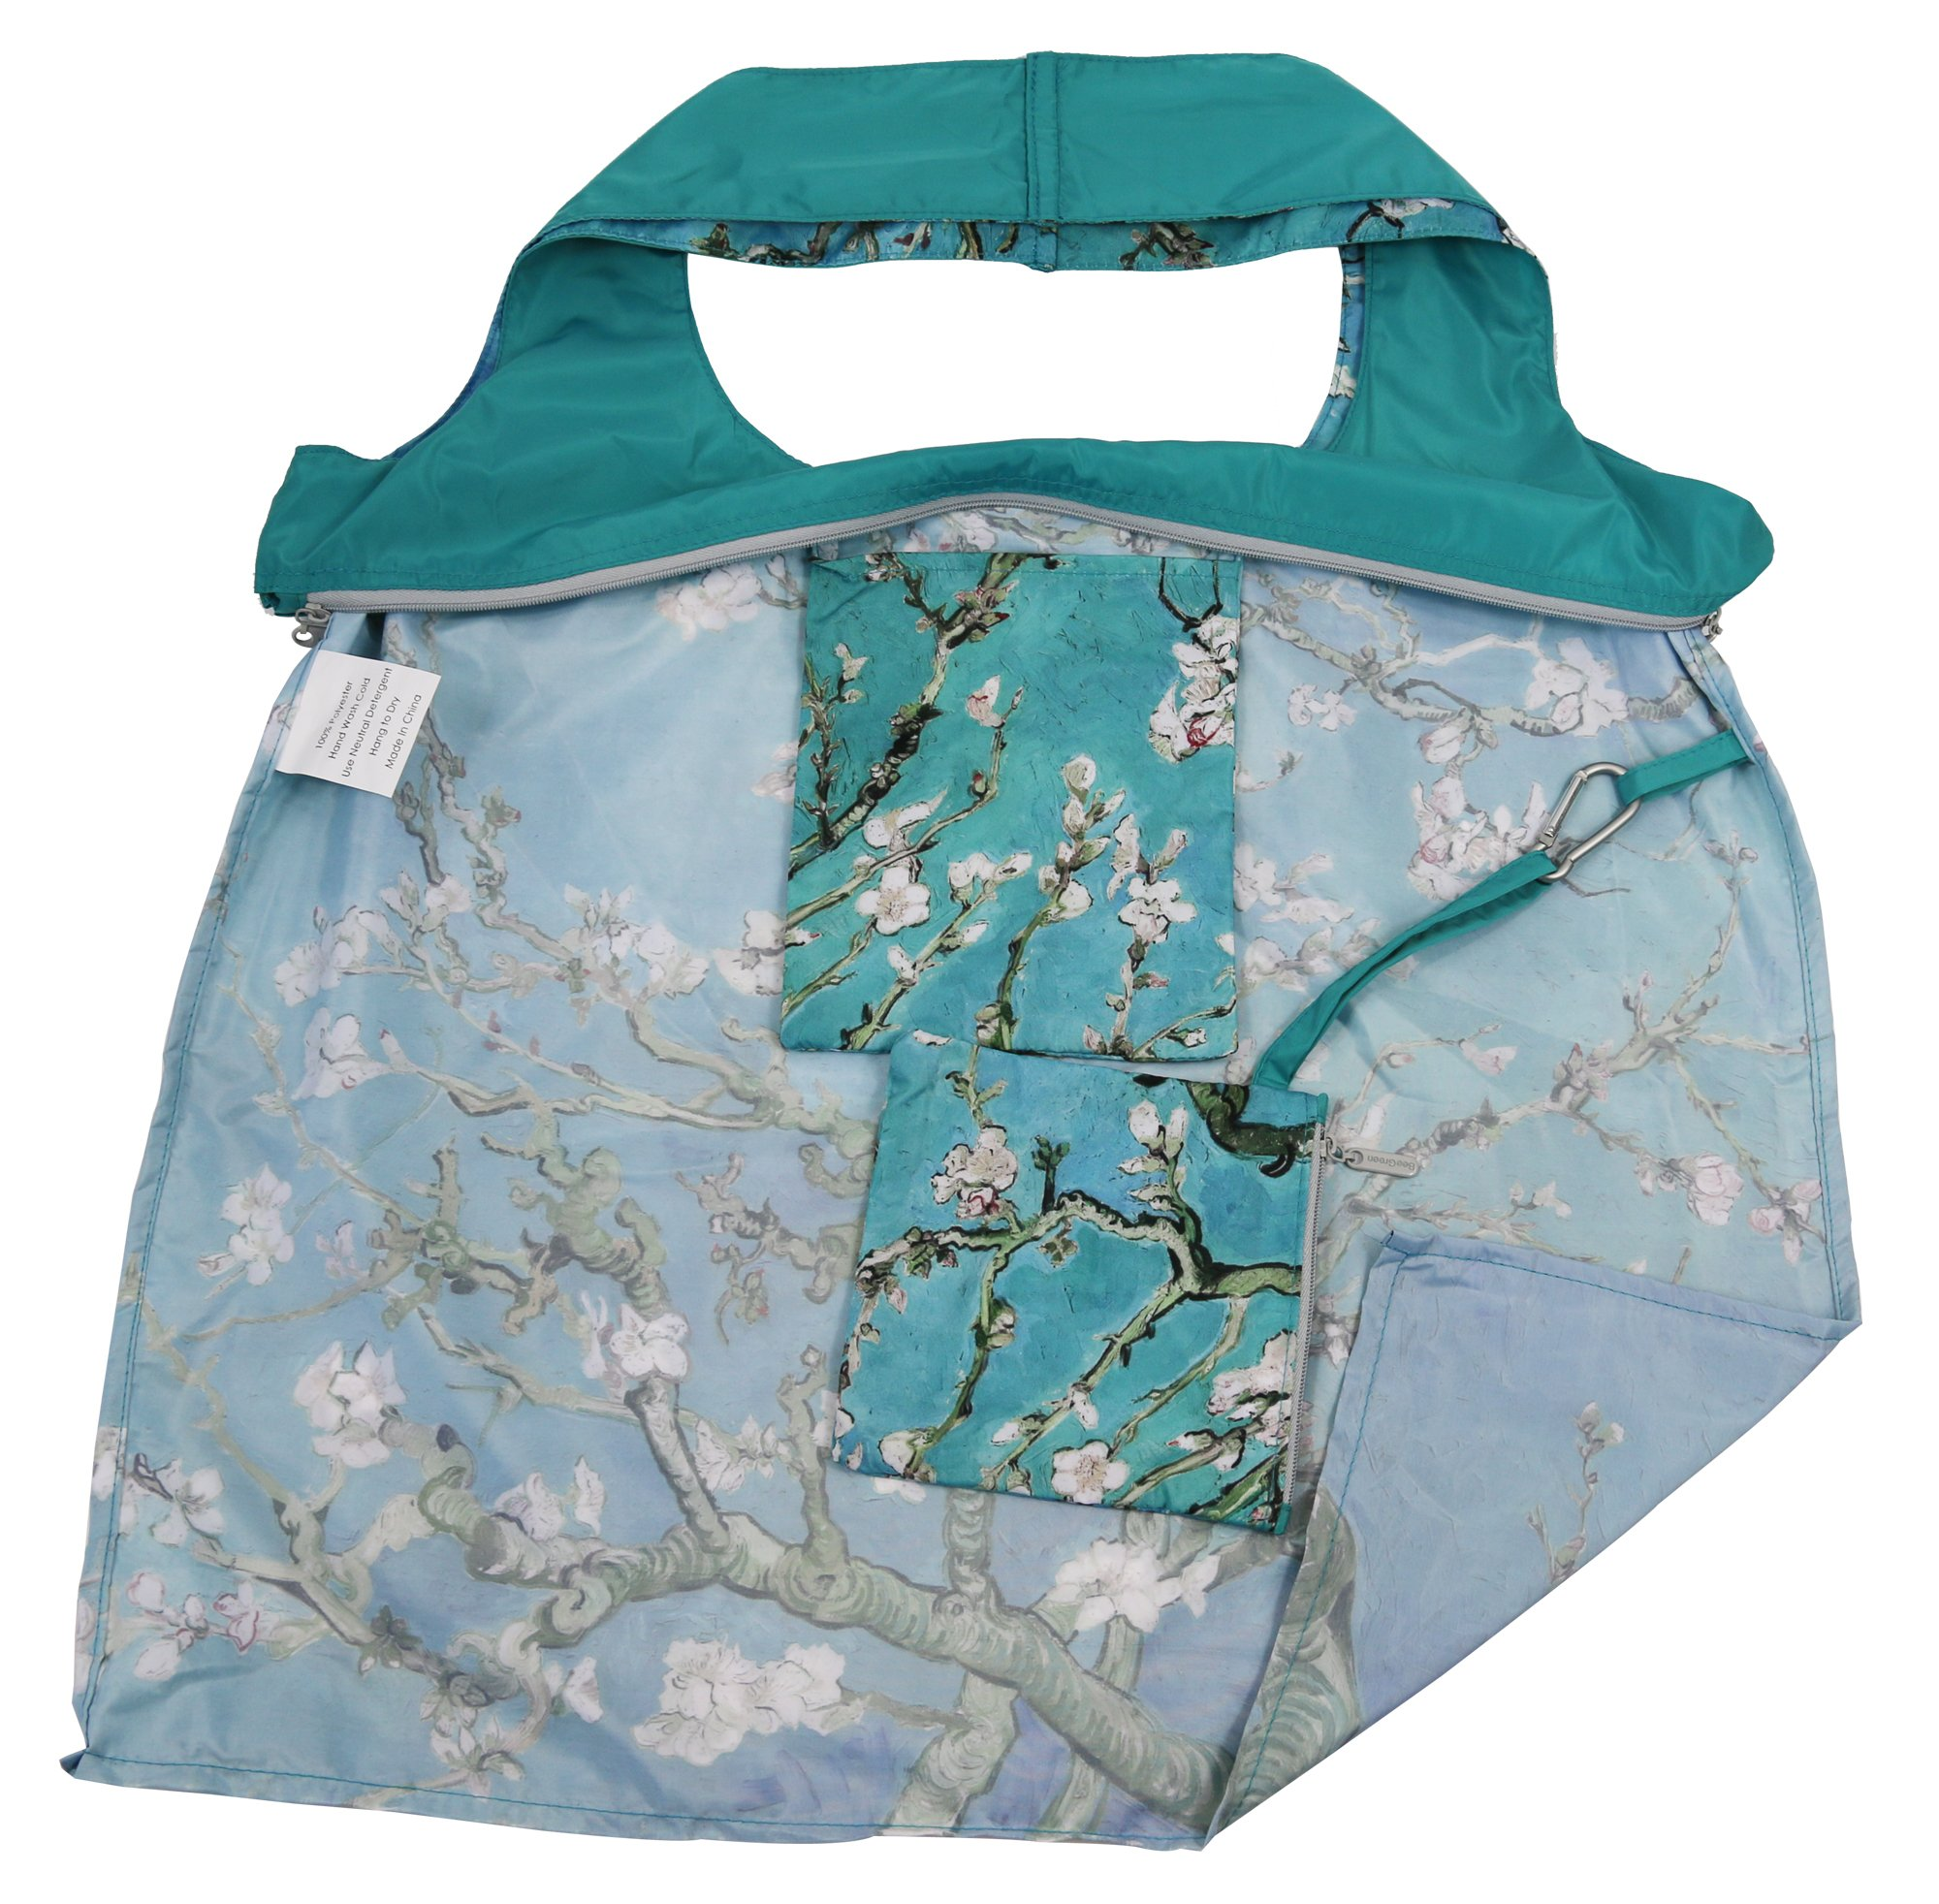 Reusable Grocery Bags with Zipper Closure,Foldable into Zippered Pocket … (Apricot tree) by BeeGreen (Image #3)